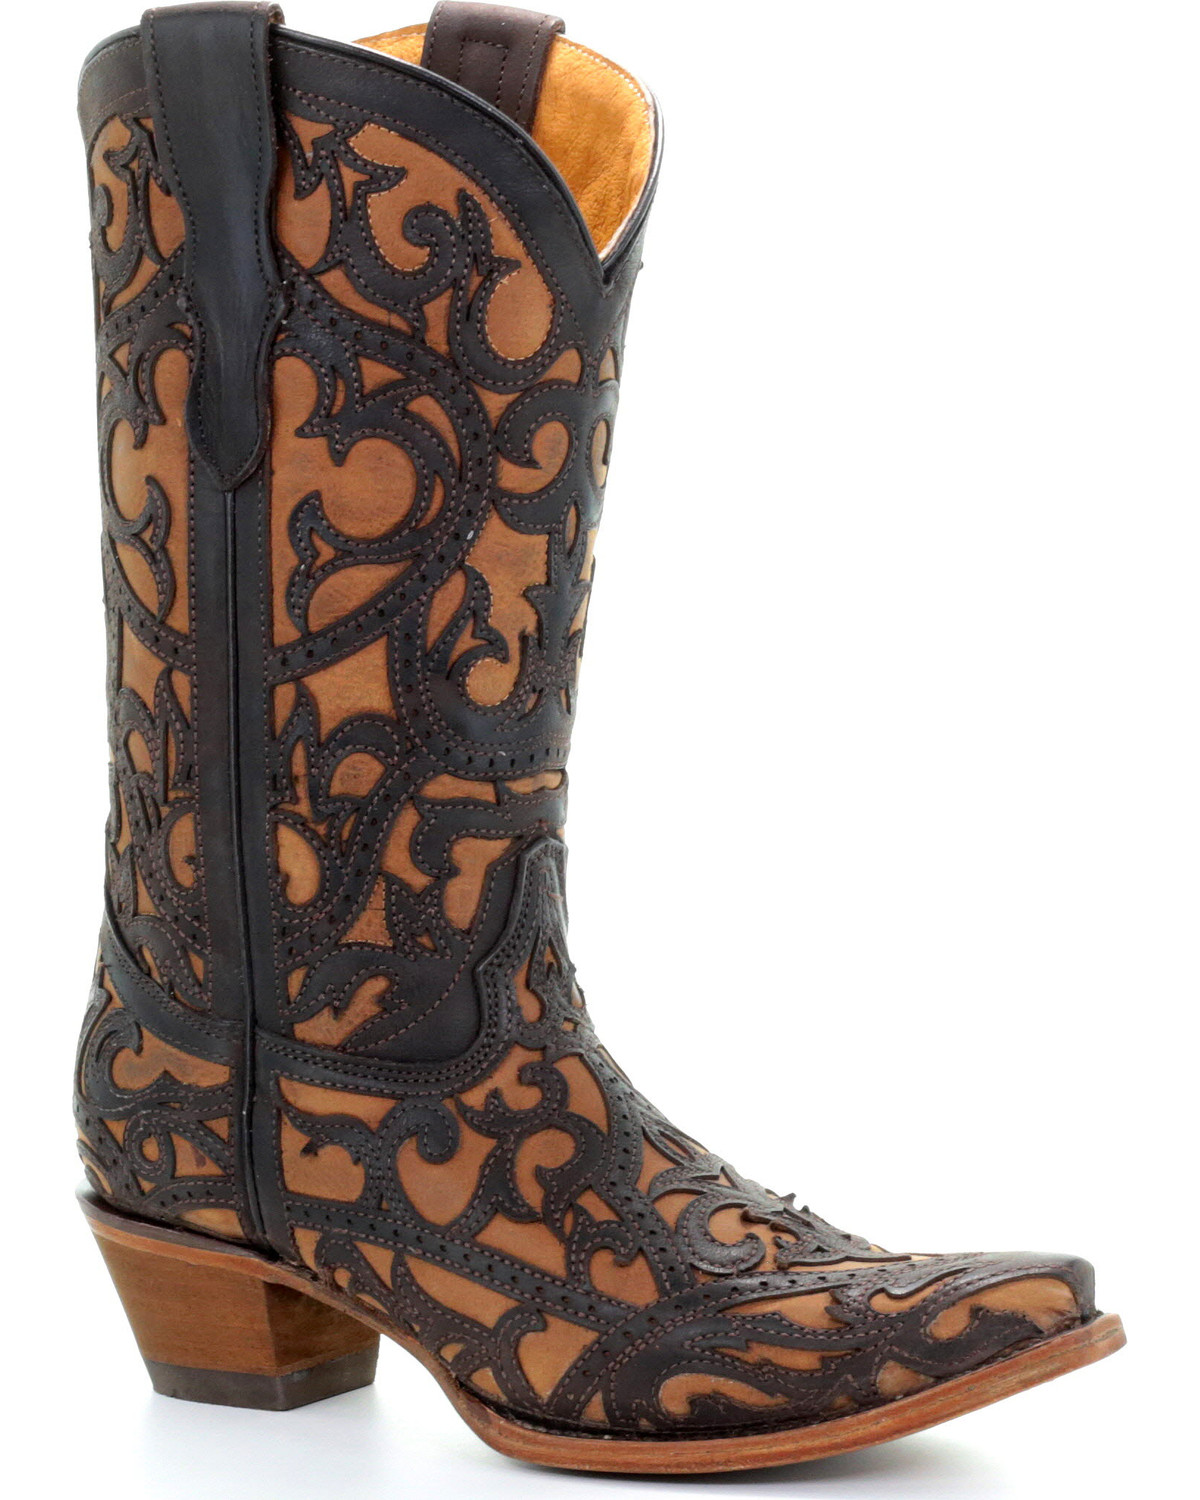 0ff200b1f Corral Youth Girls  Brown Full Overlay Boots - Snip Toe